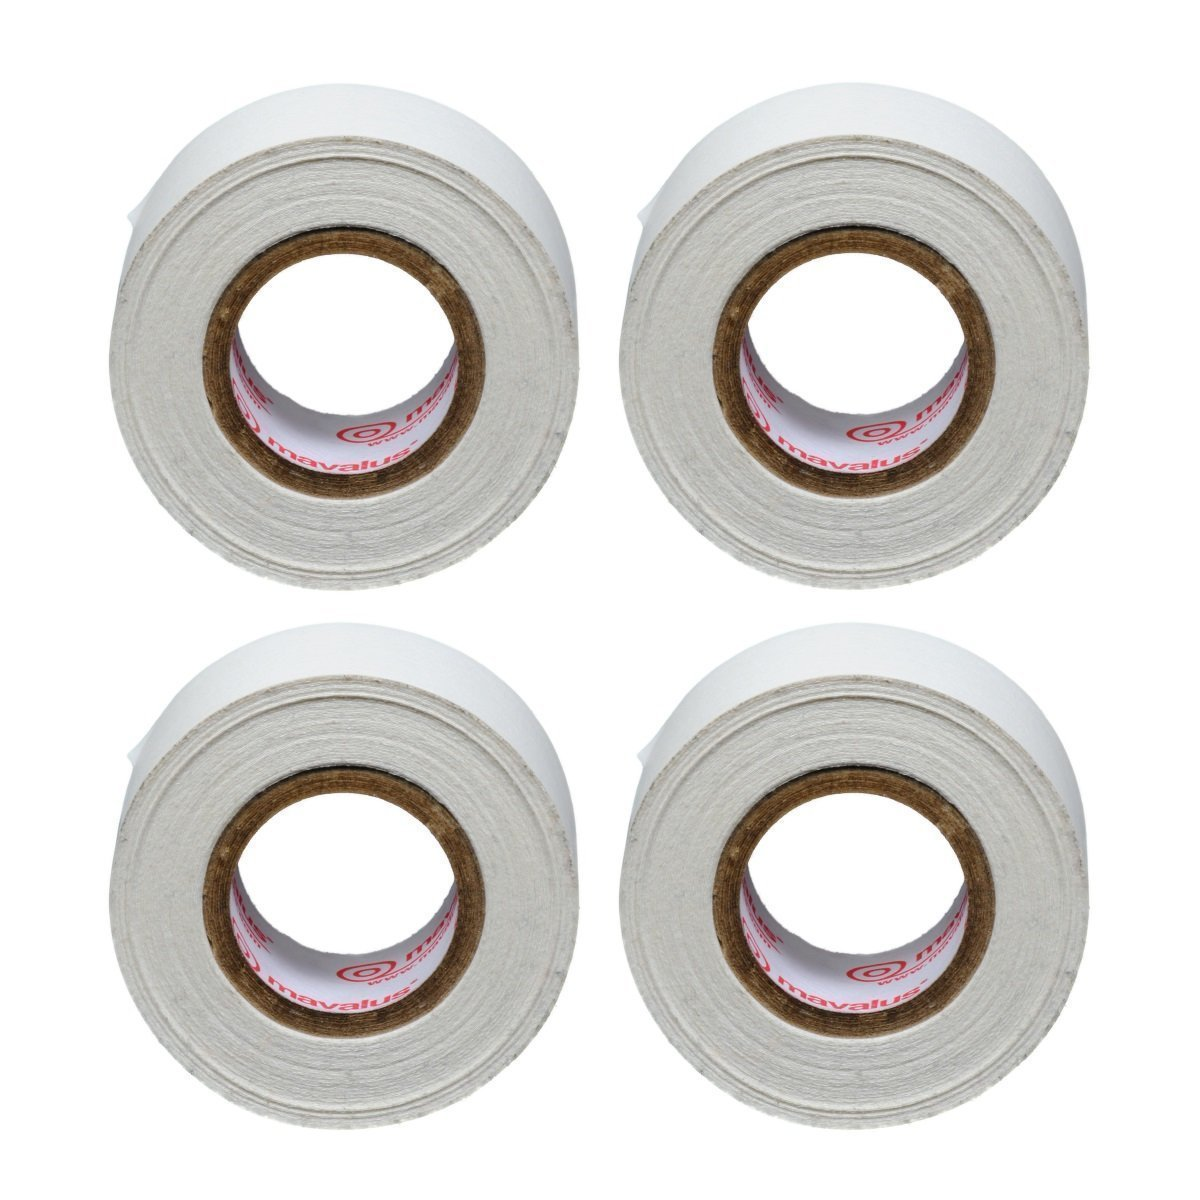 Mavalus® Tape 1 Wide x 1 Core (9yrds long) 4 Pack